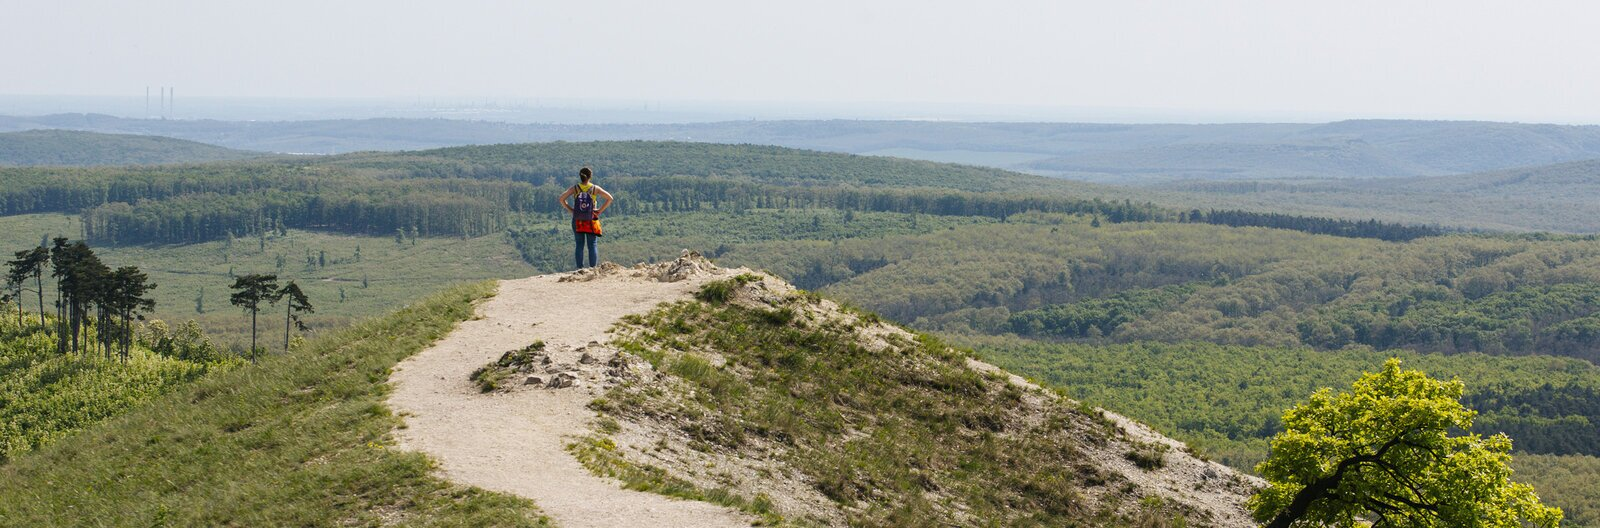 7 great escapes from Budapest for active outdoor recreation